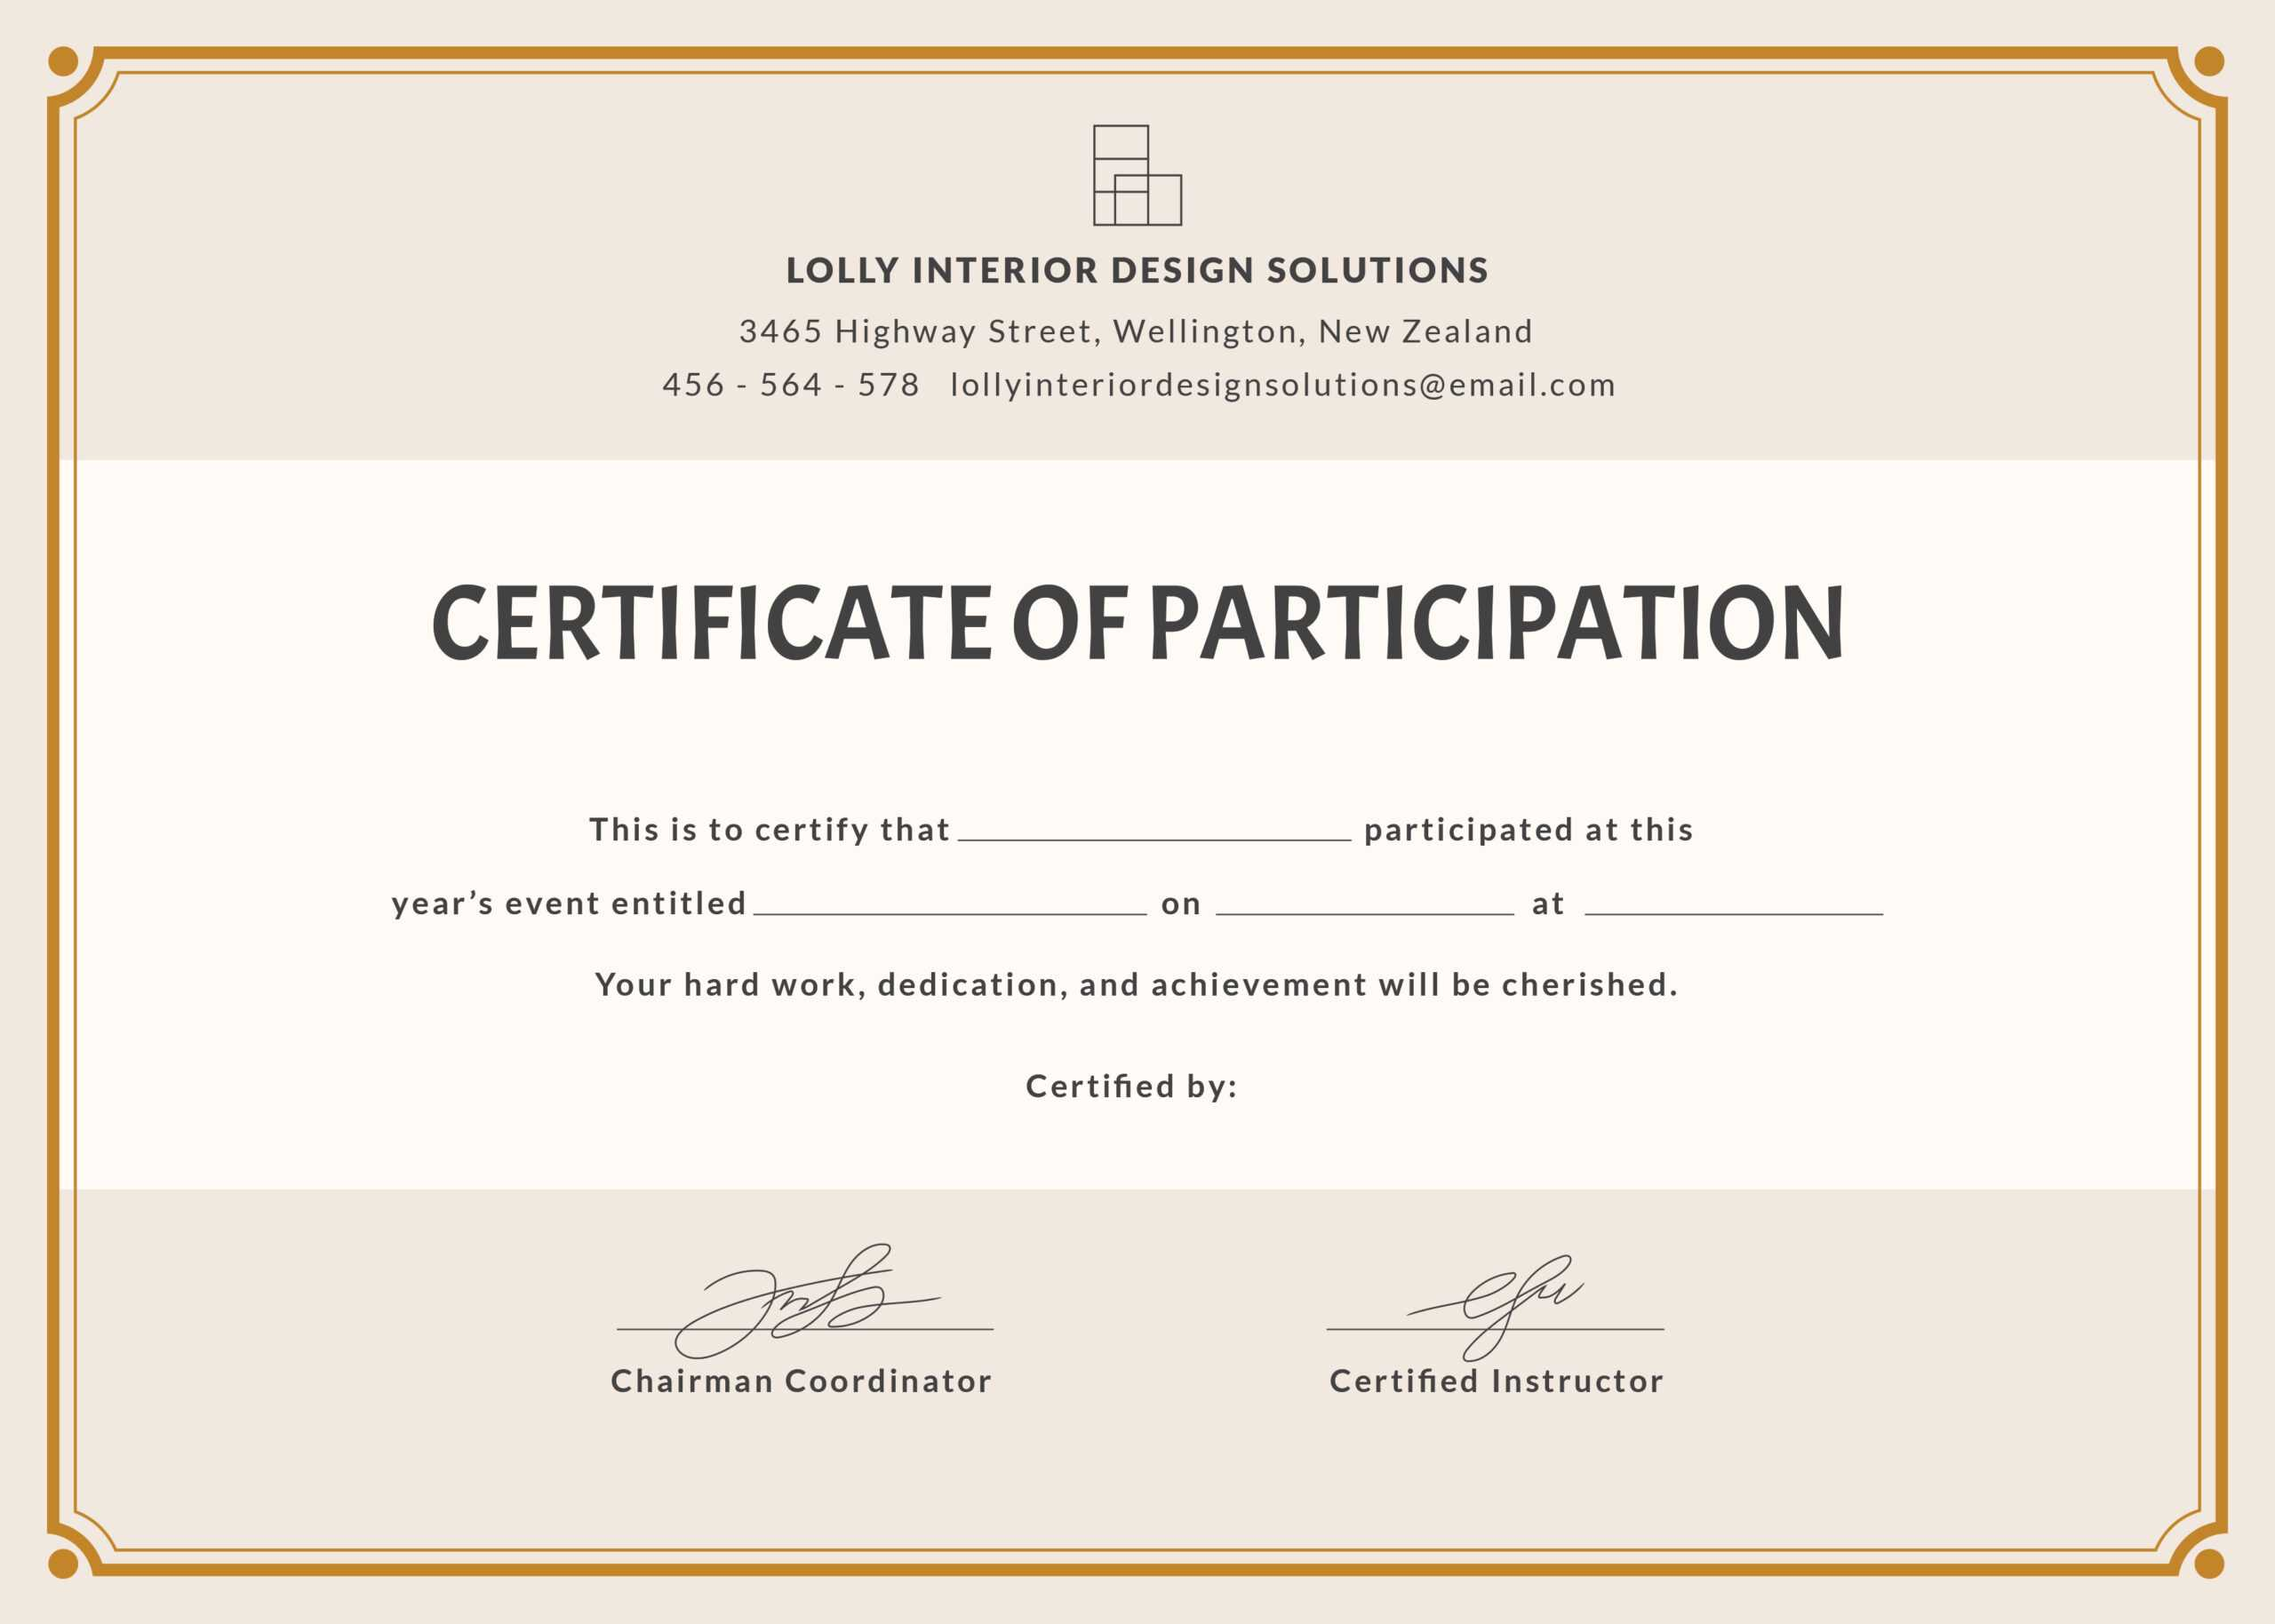 Format For Certificate Of Participation - Falep.midnightpig.co For Certificate Of Participation Word Template